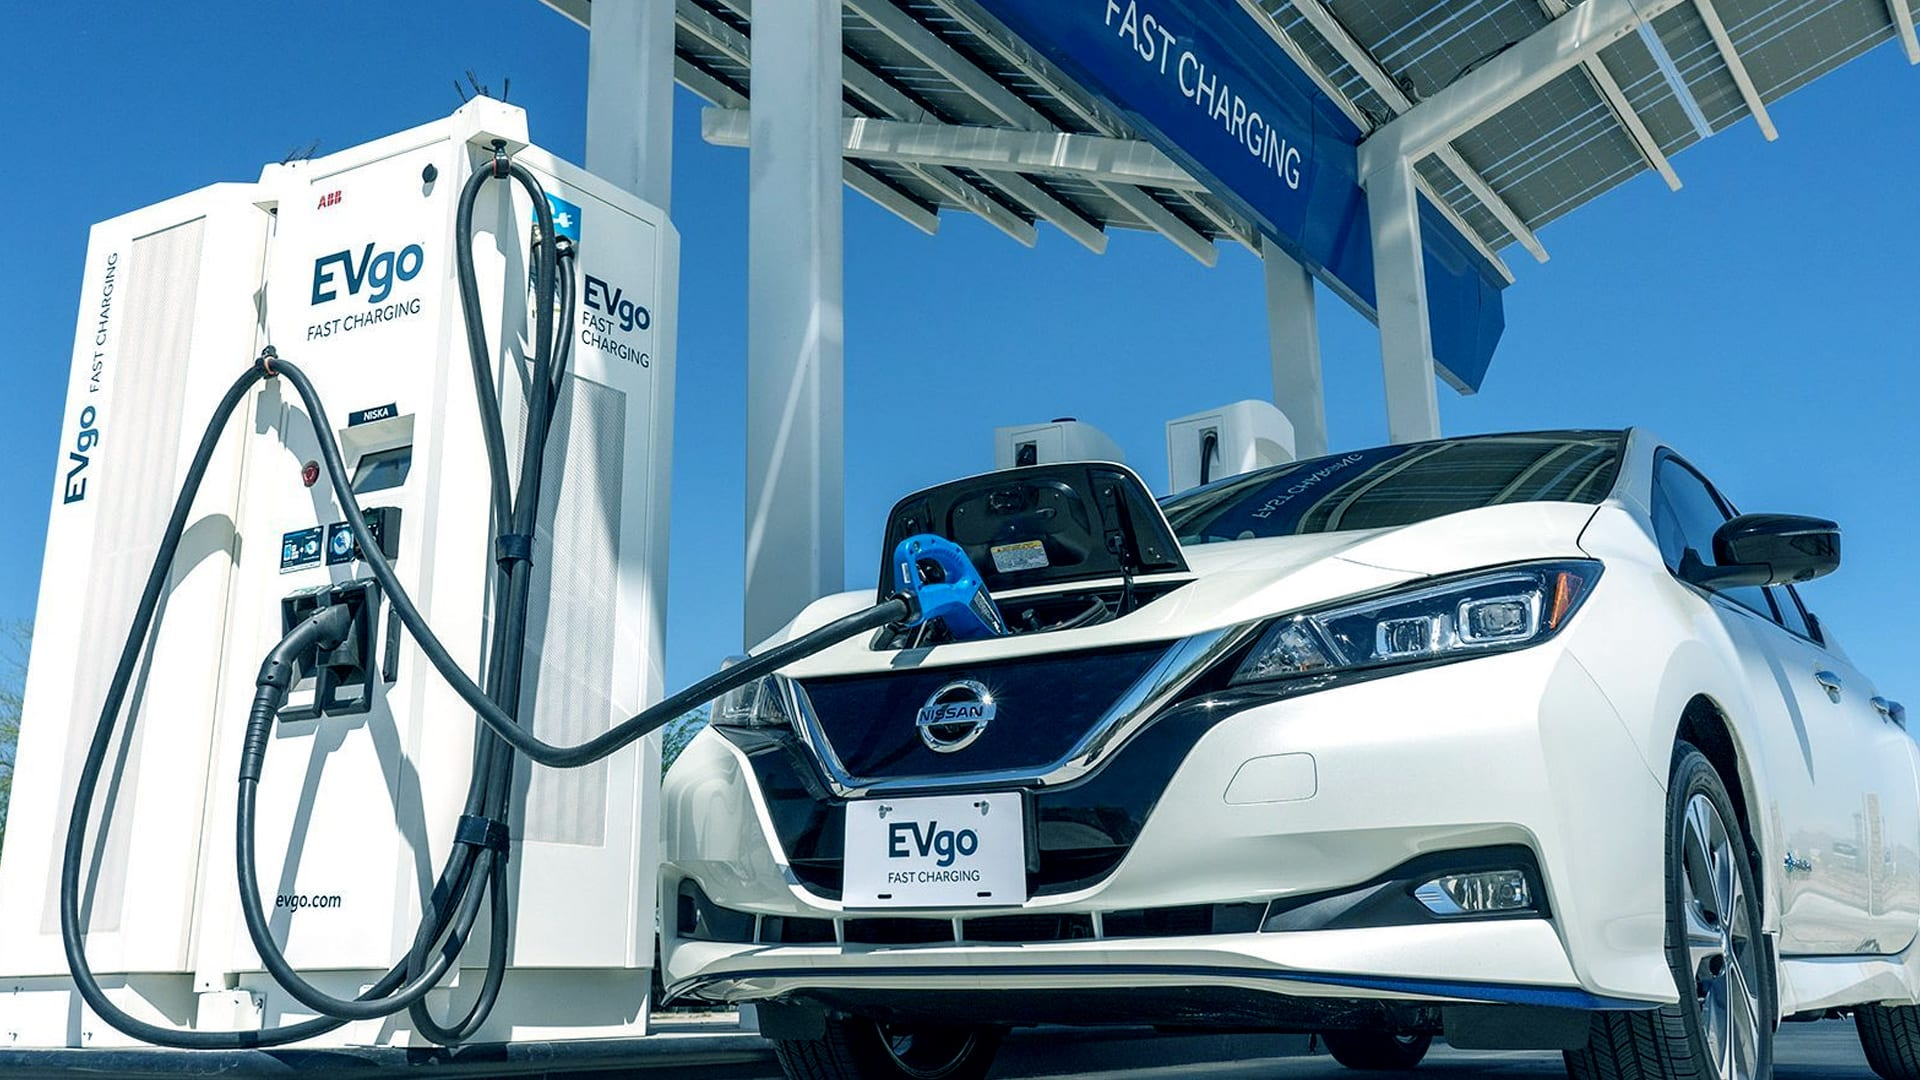 Nissan conducting feasibility study for producing EVs in India